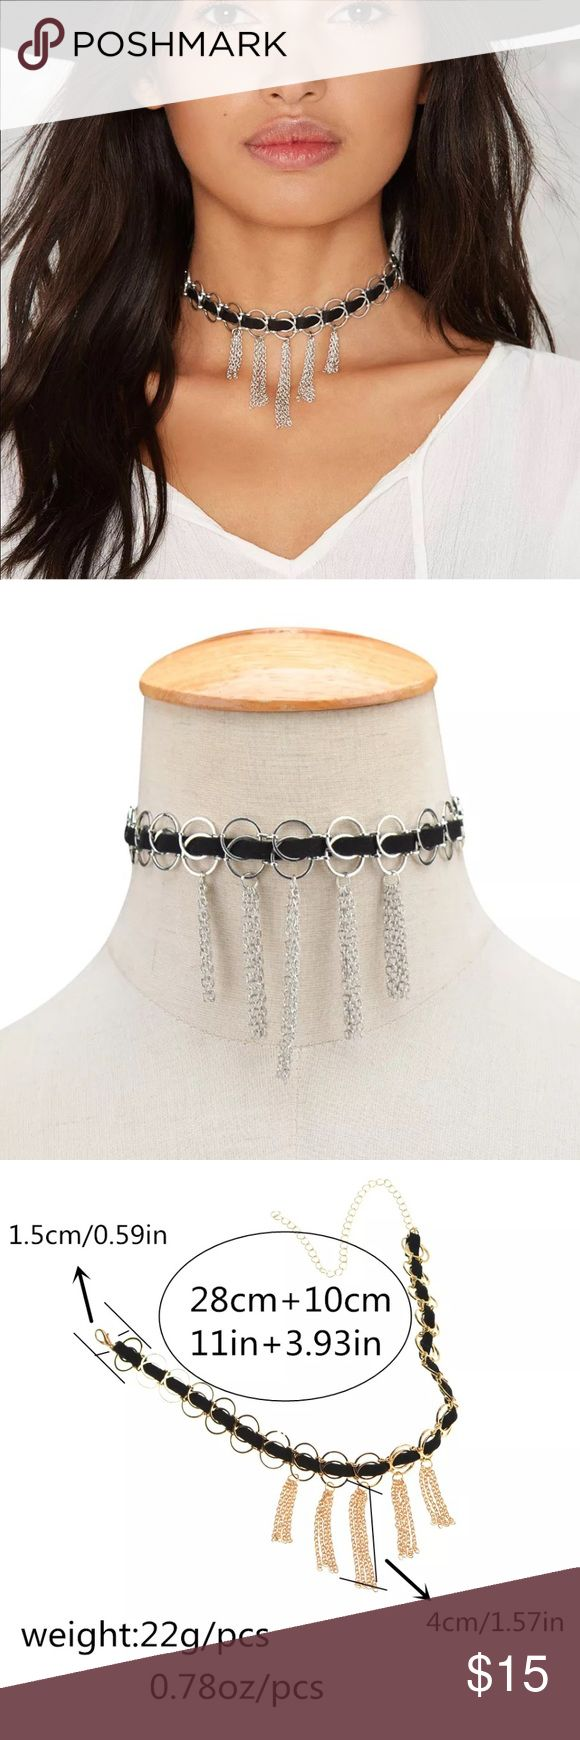 New✨ Tassel Silver Choker  ✨ ✨Fashion Jewelry ✨Alloy ✨Silver Plated  🔸Brand New✨ 🔸PRICE IS FIRM- already listed at lowest price  🔸If you want to save please look into bundling  🔸In Stock 🔸No Trades 🔸Will ship within 24 hours Monday-Friday  🚫Please -NO- Offers on items priced $10 and under AND ON SALE ITEMS‼️  🚫Serious Inquiries Only❣️  🔹Bundle one or more items from my boutique to only pay one shipping fee✨ Jewelry Necklaces